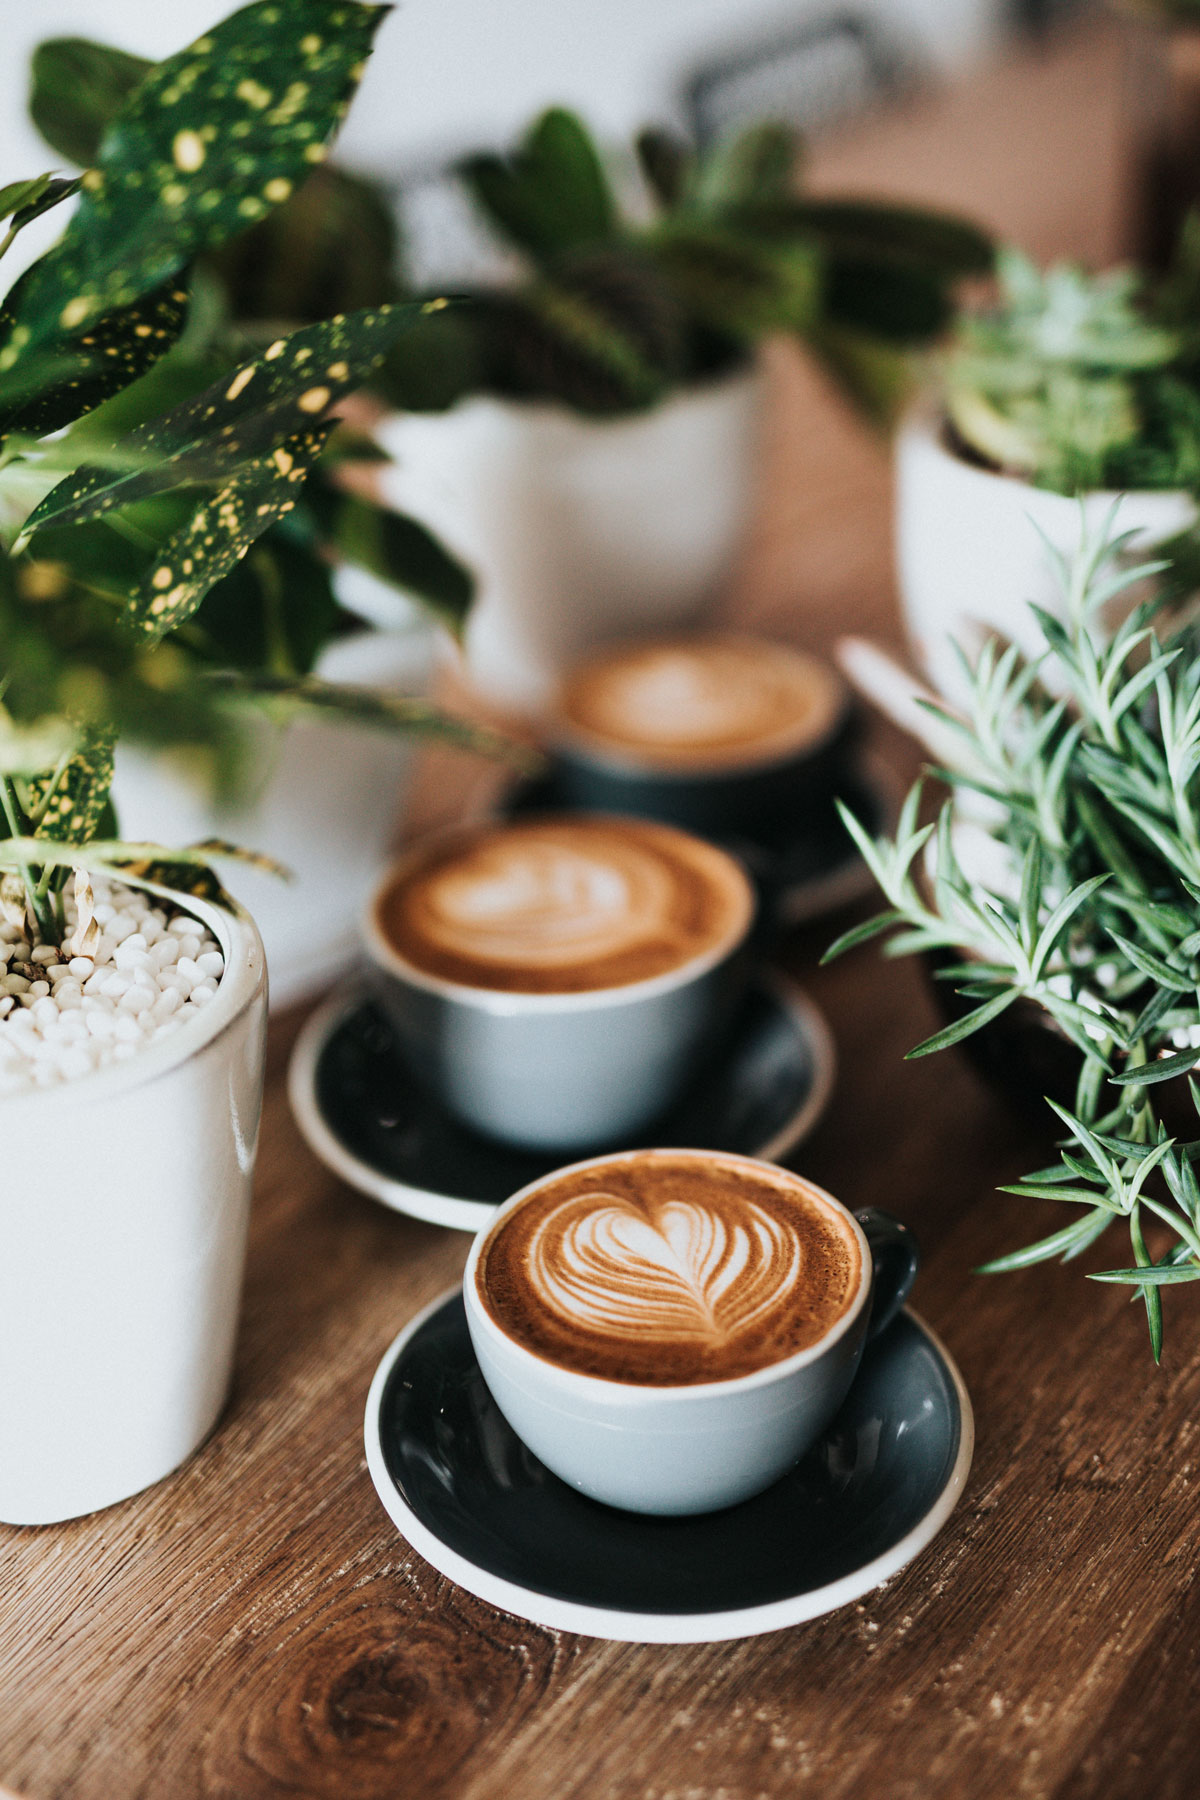 Artcaffe Kenya The Best Coffee in the World: Where to Find the Best Cup